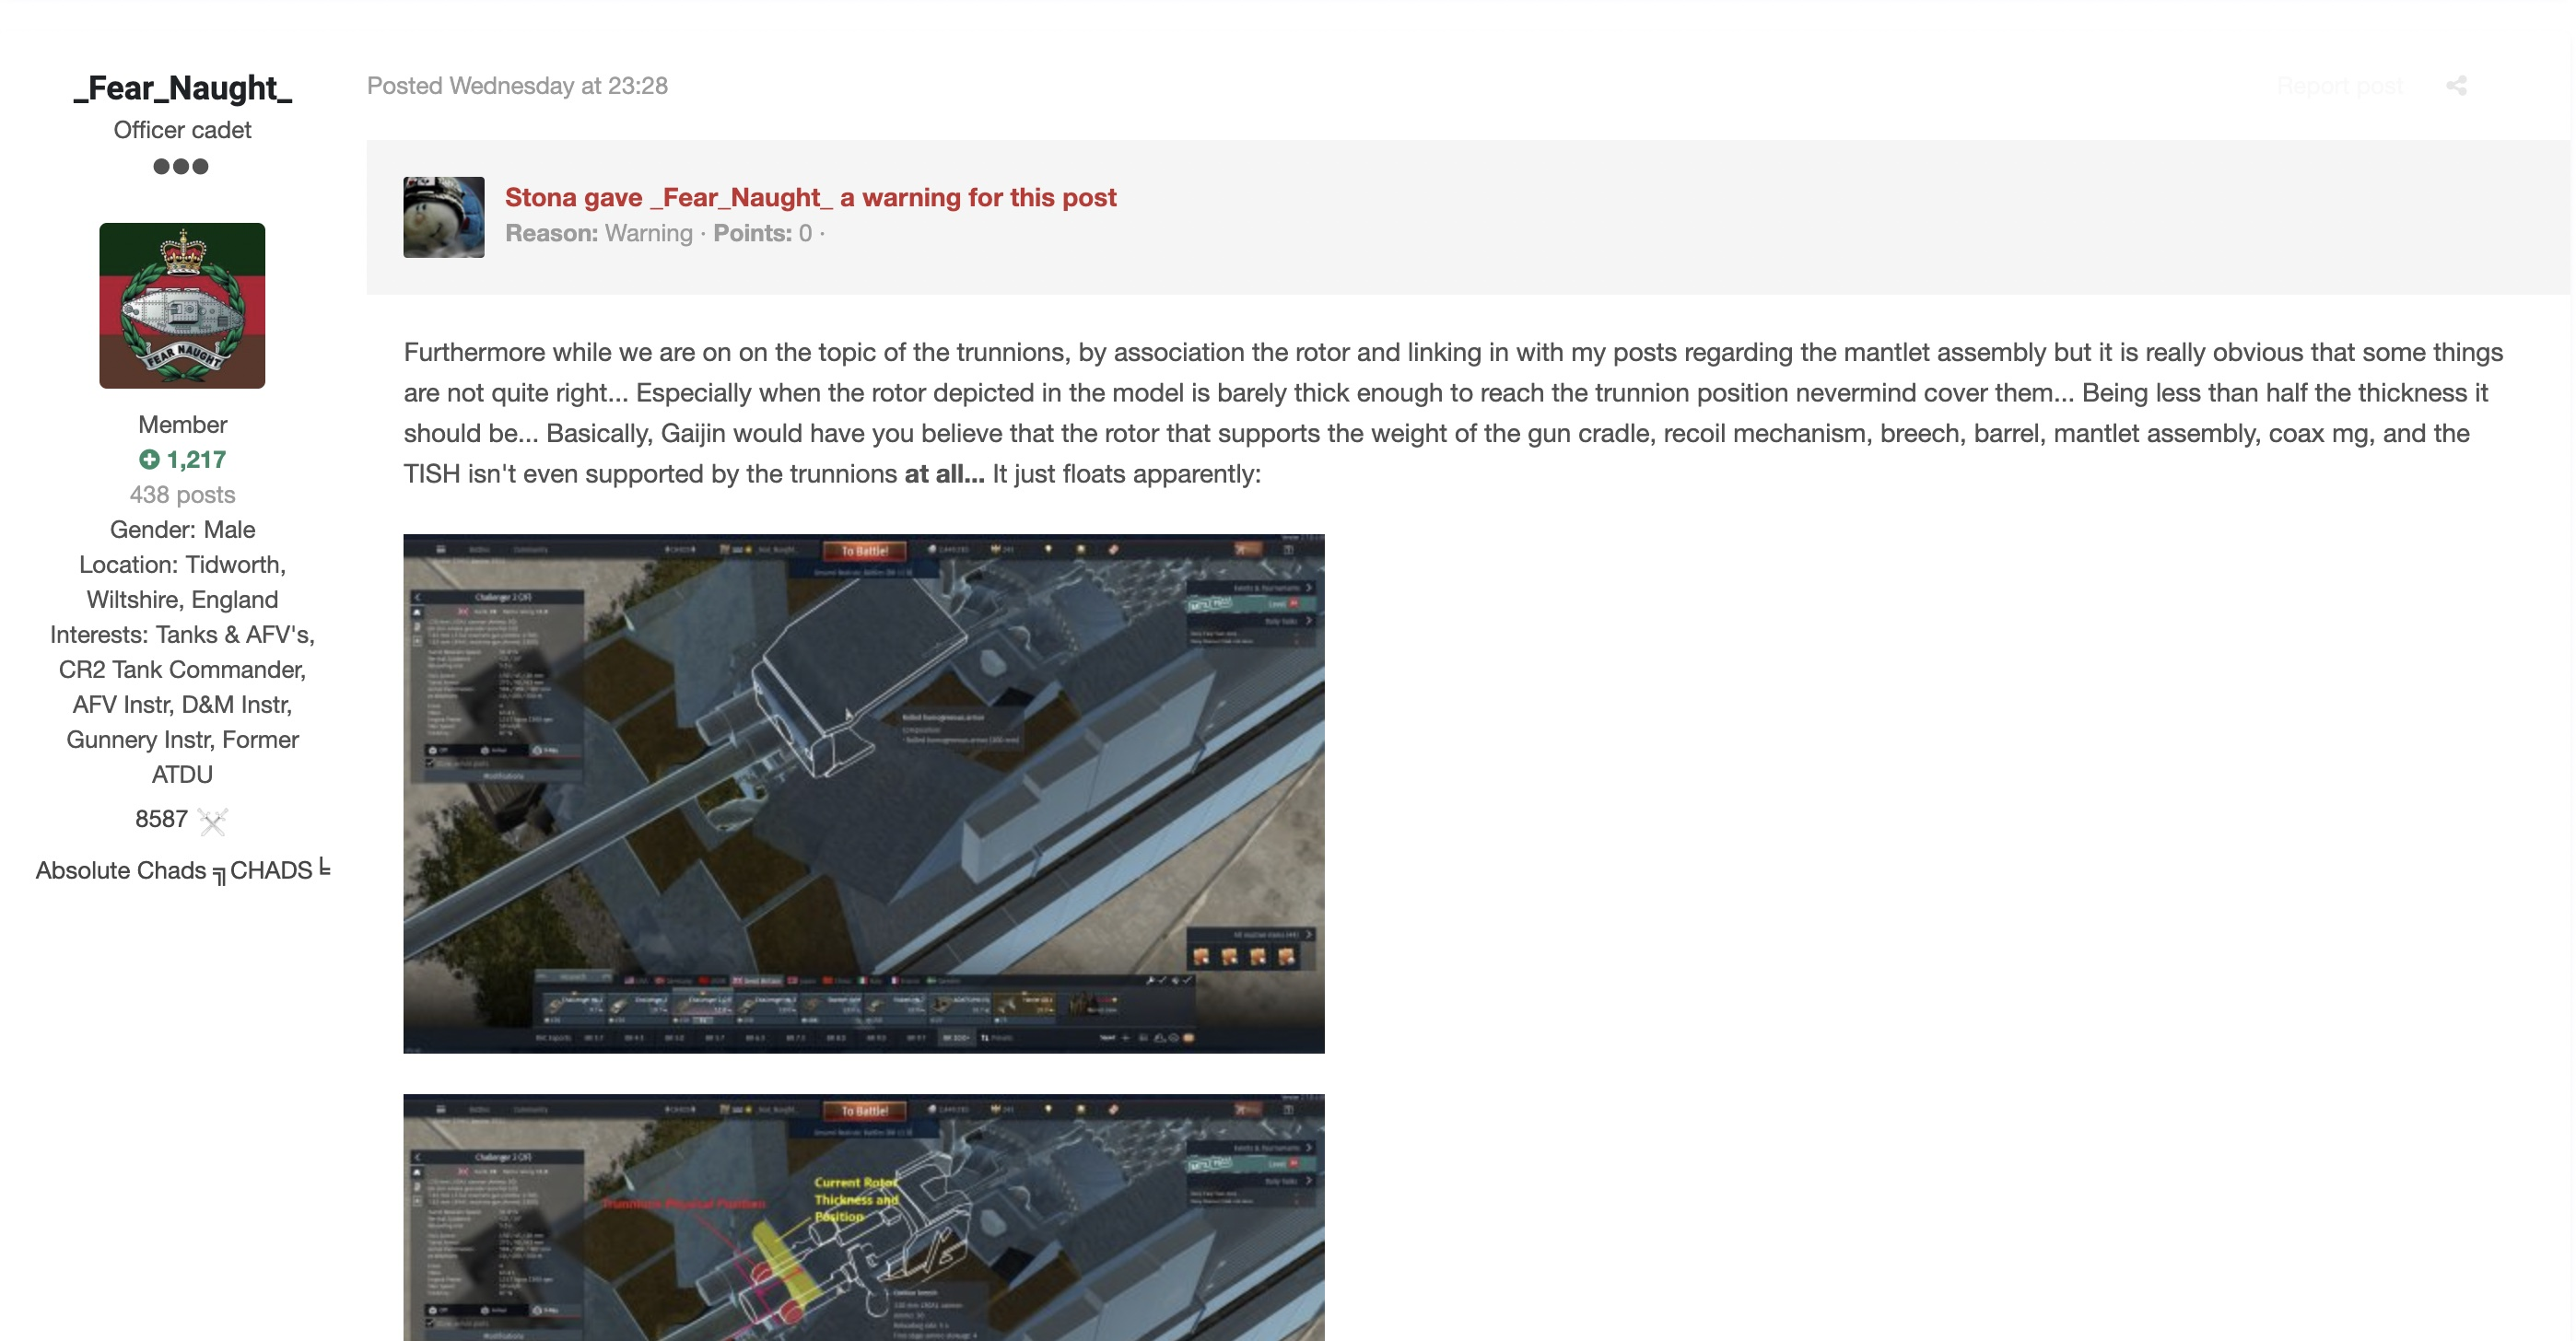 A post on the War Thunder Forum that leaks details about the Challenger 2 tank